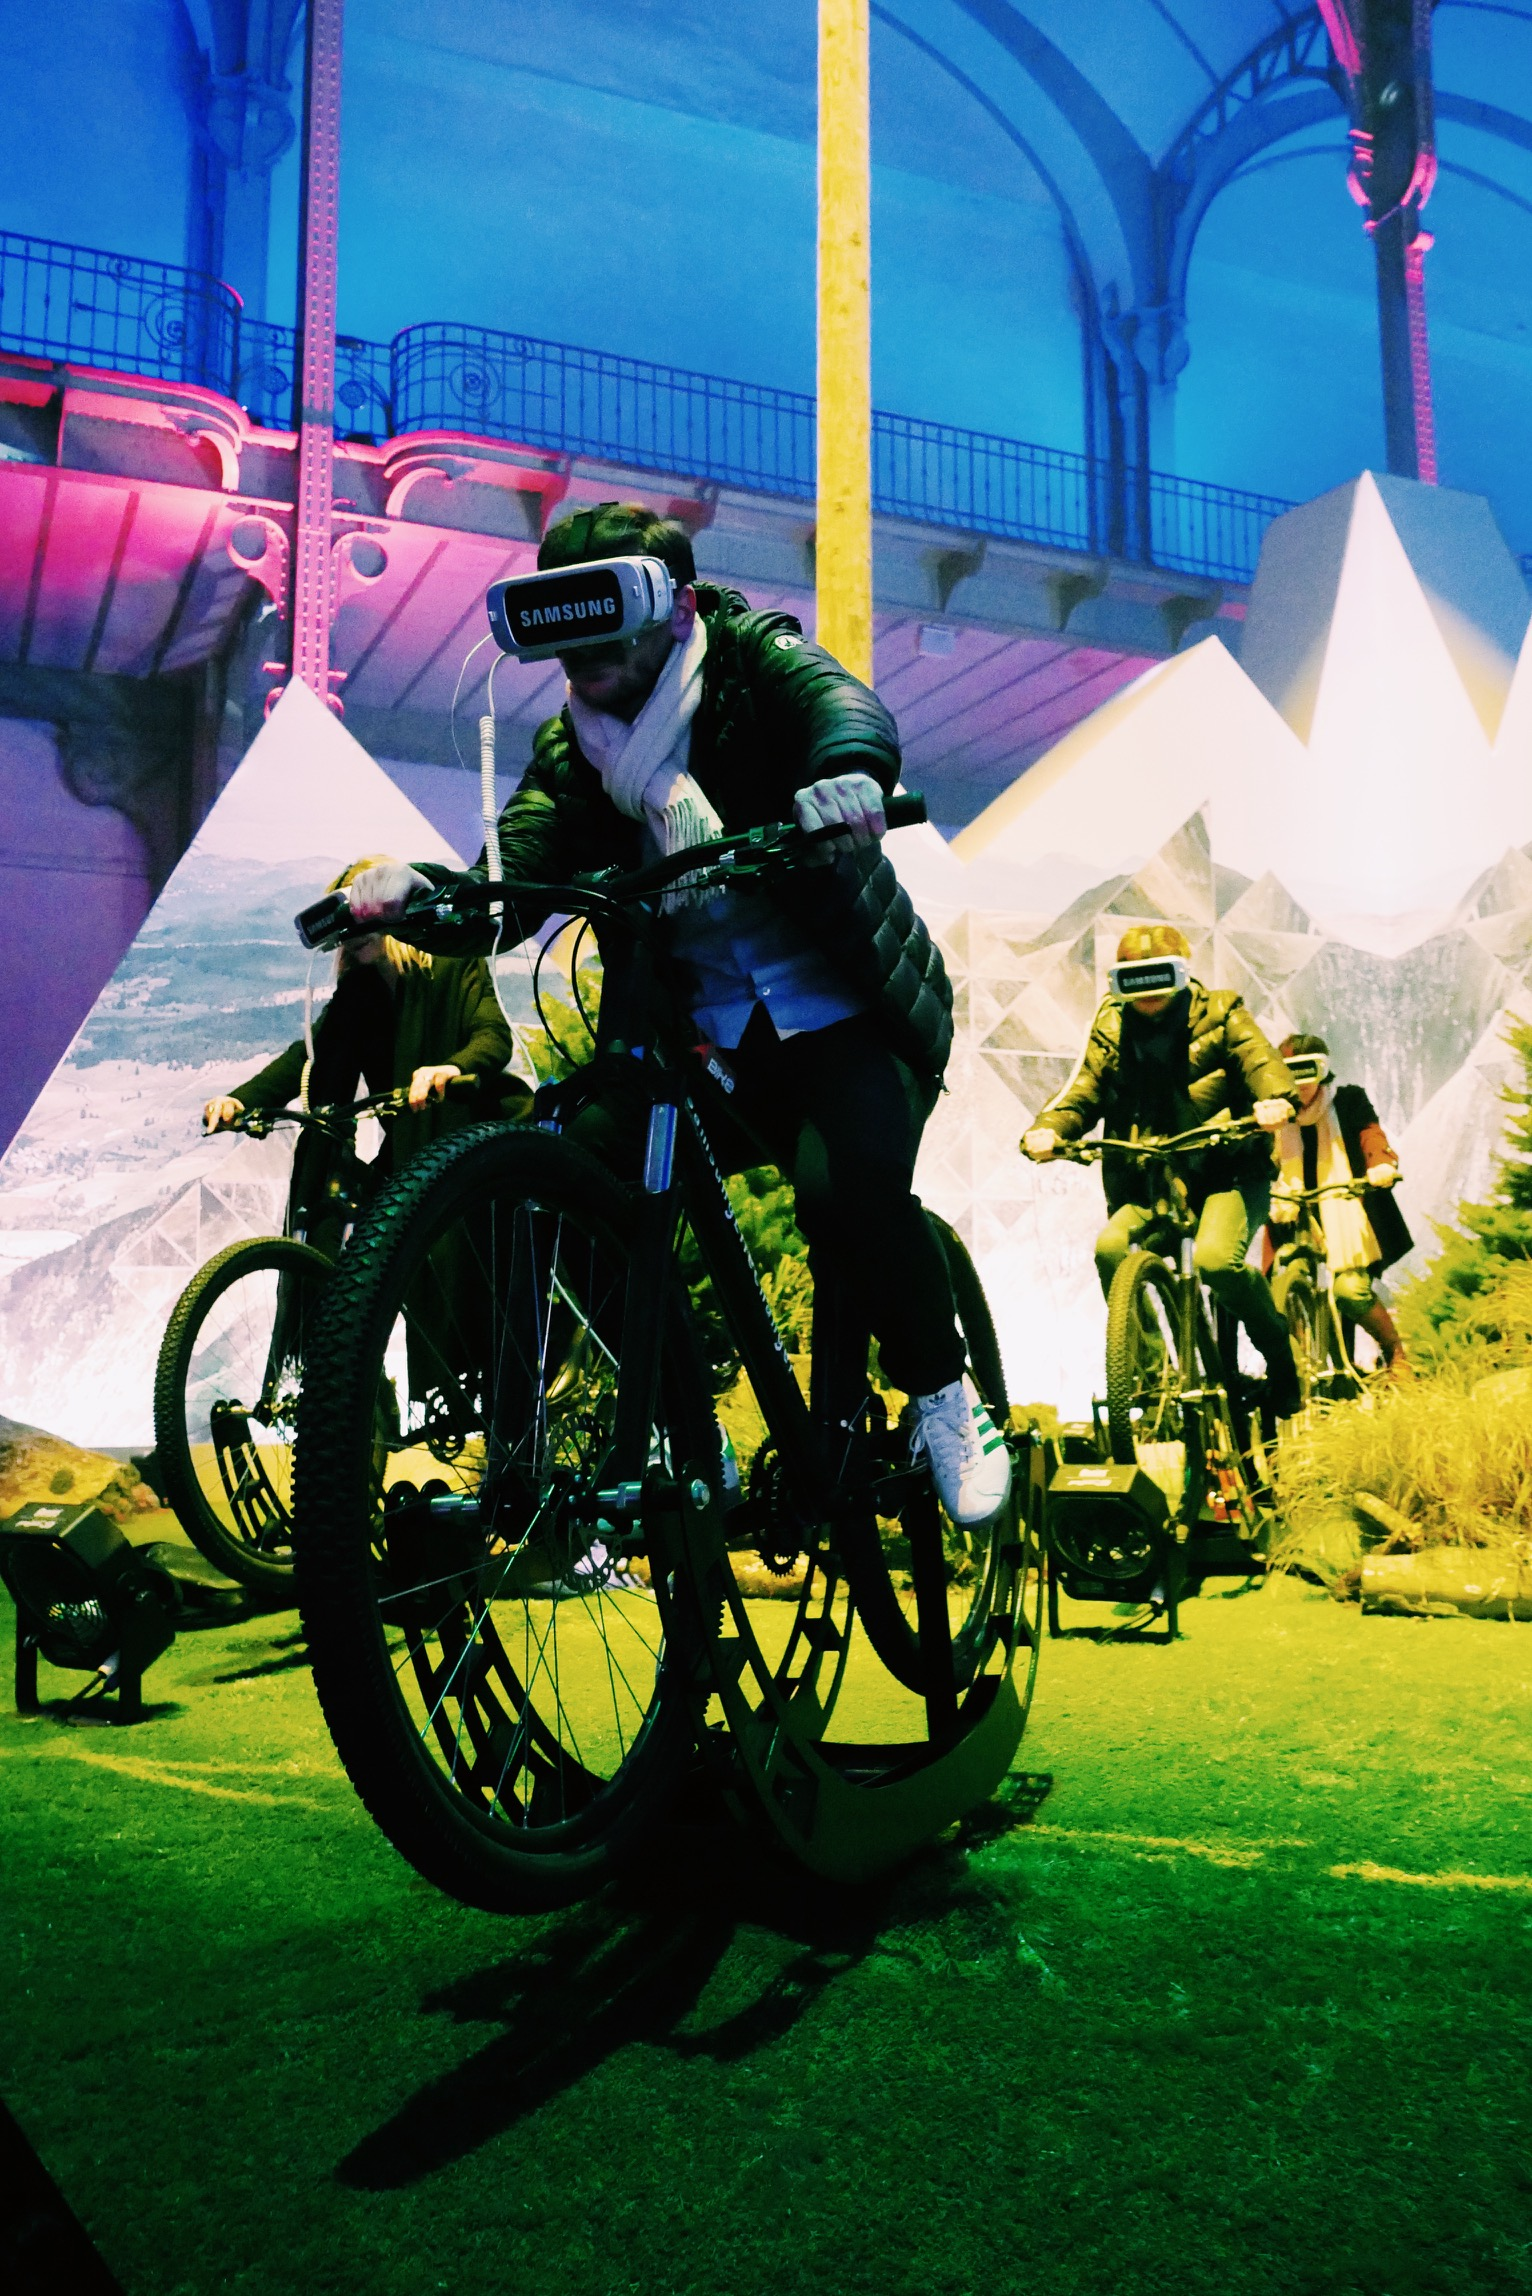 Moutain-Bike-Gear-VR-Samsung-Life-Changer-Park-parc-réalité-virtuelle-Grand-Palais-des-Glaces-Paris-photos-usofparis-blog